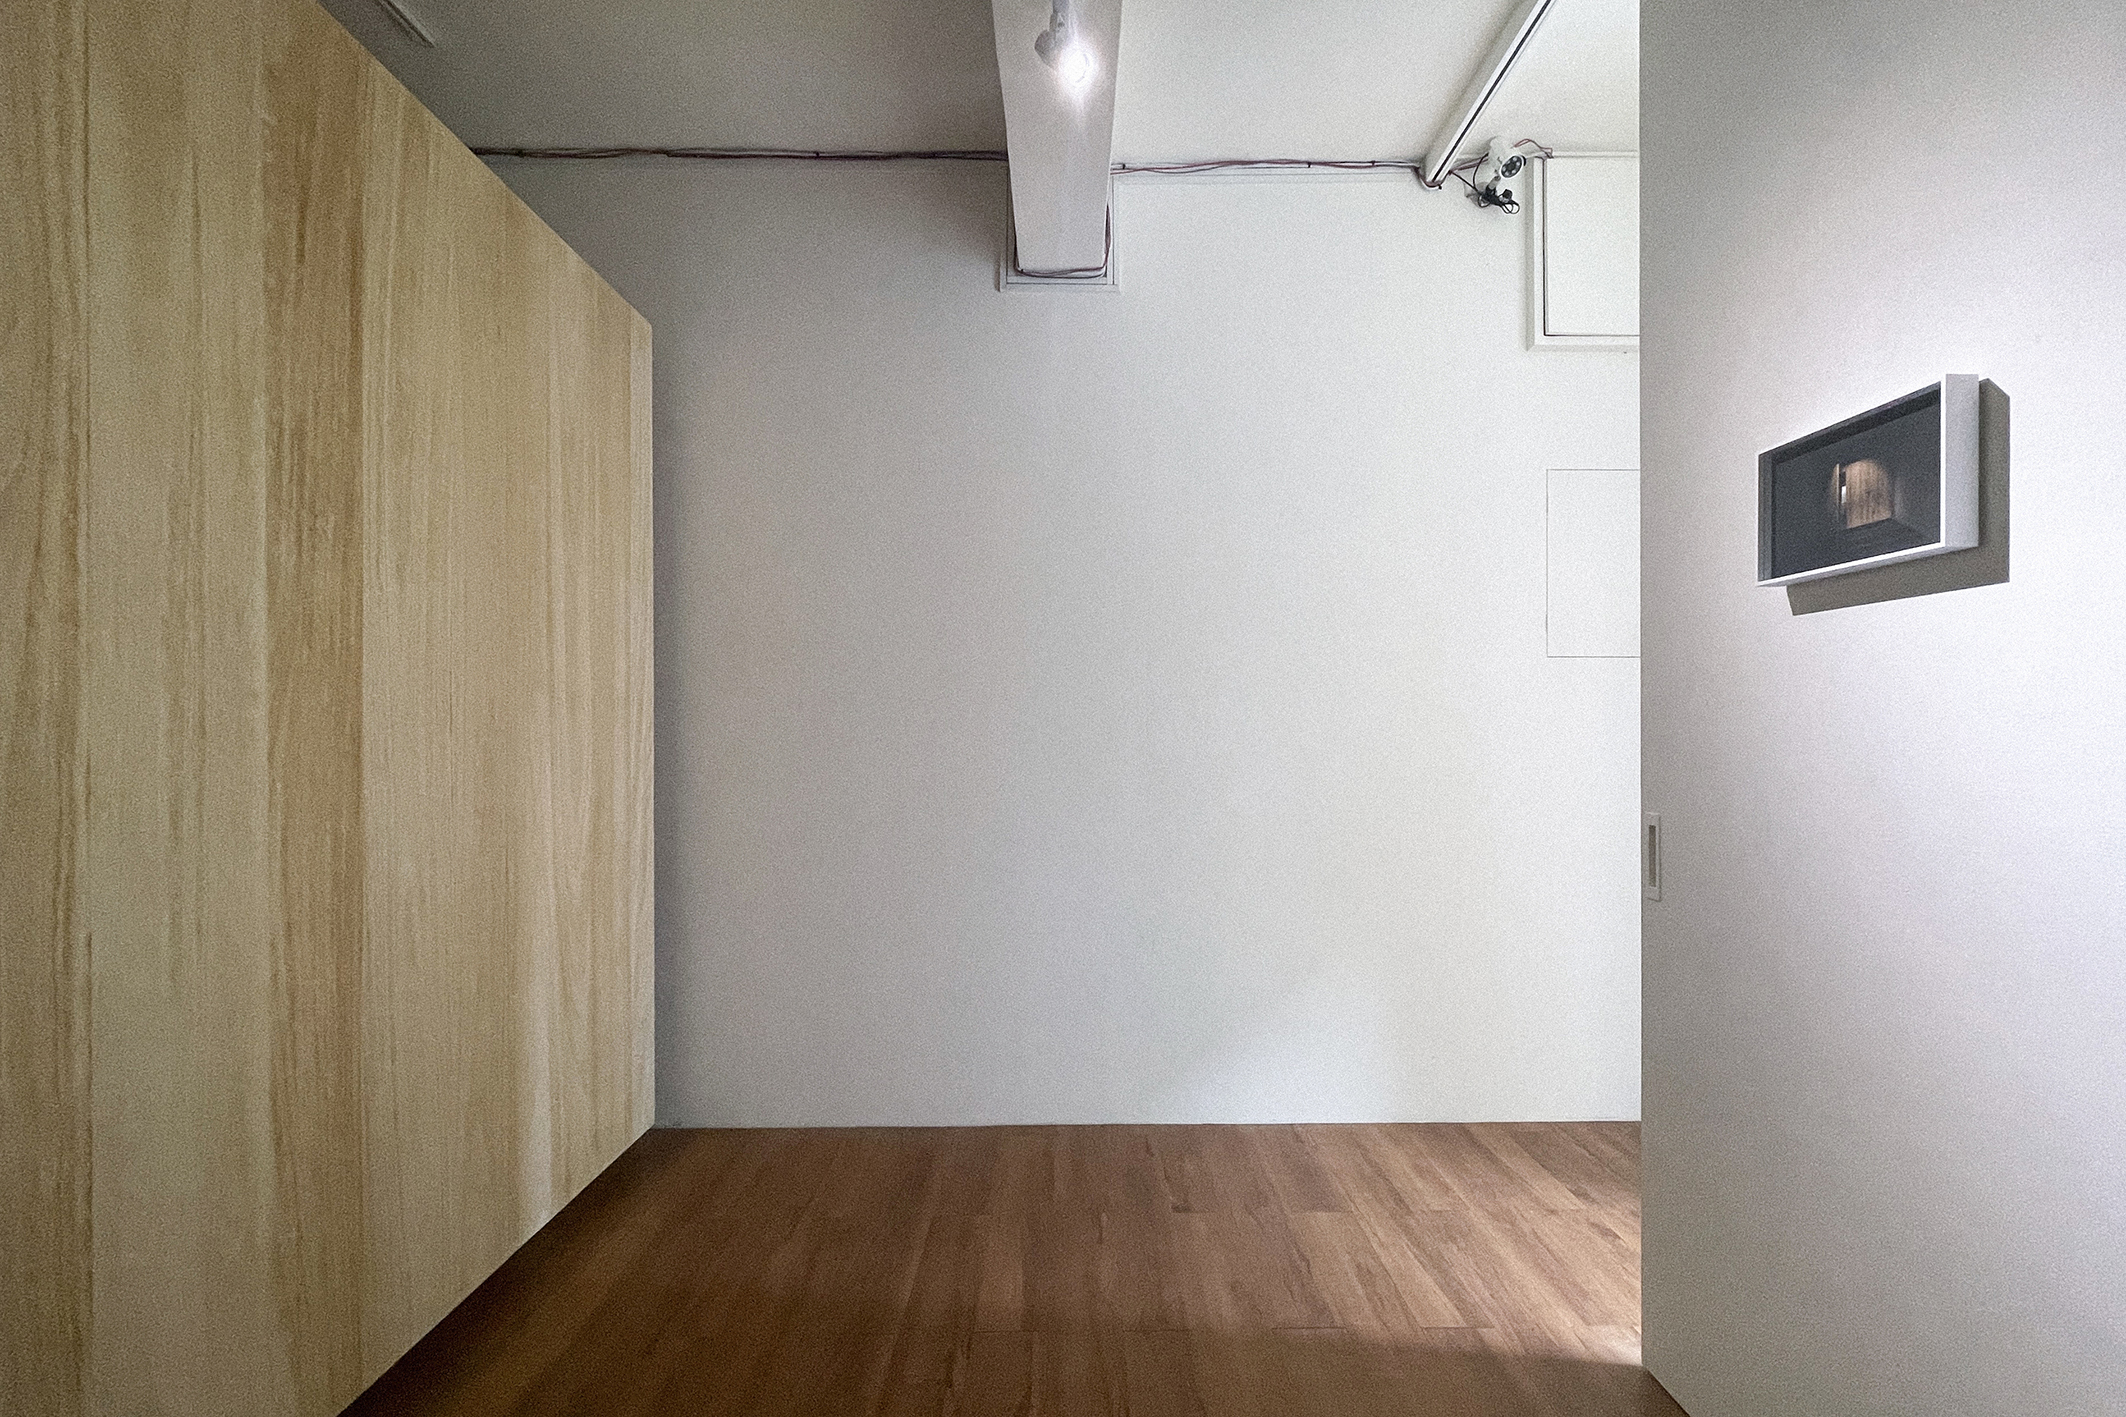 The Moment of Consciousness, Site specific, Dimensions variable, 2021